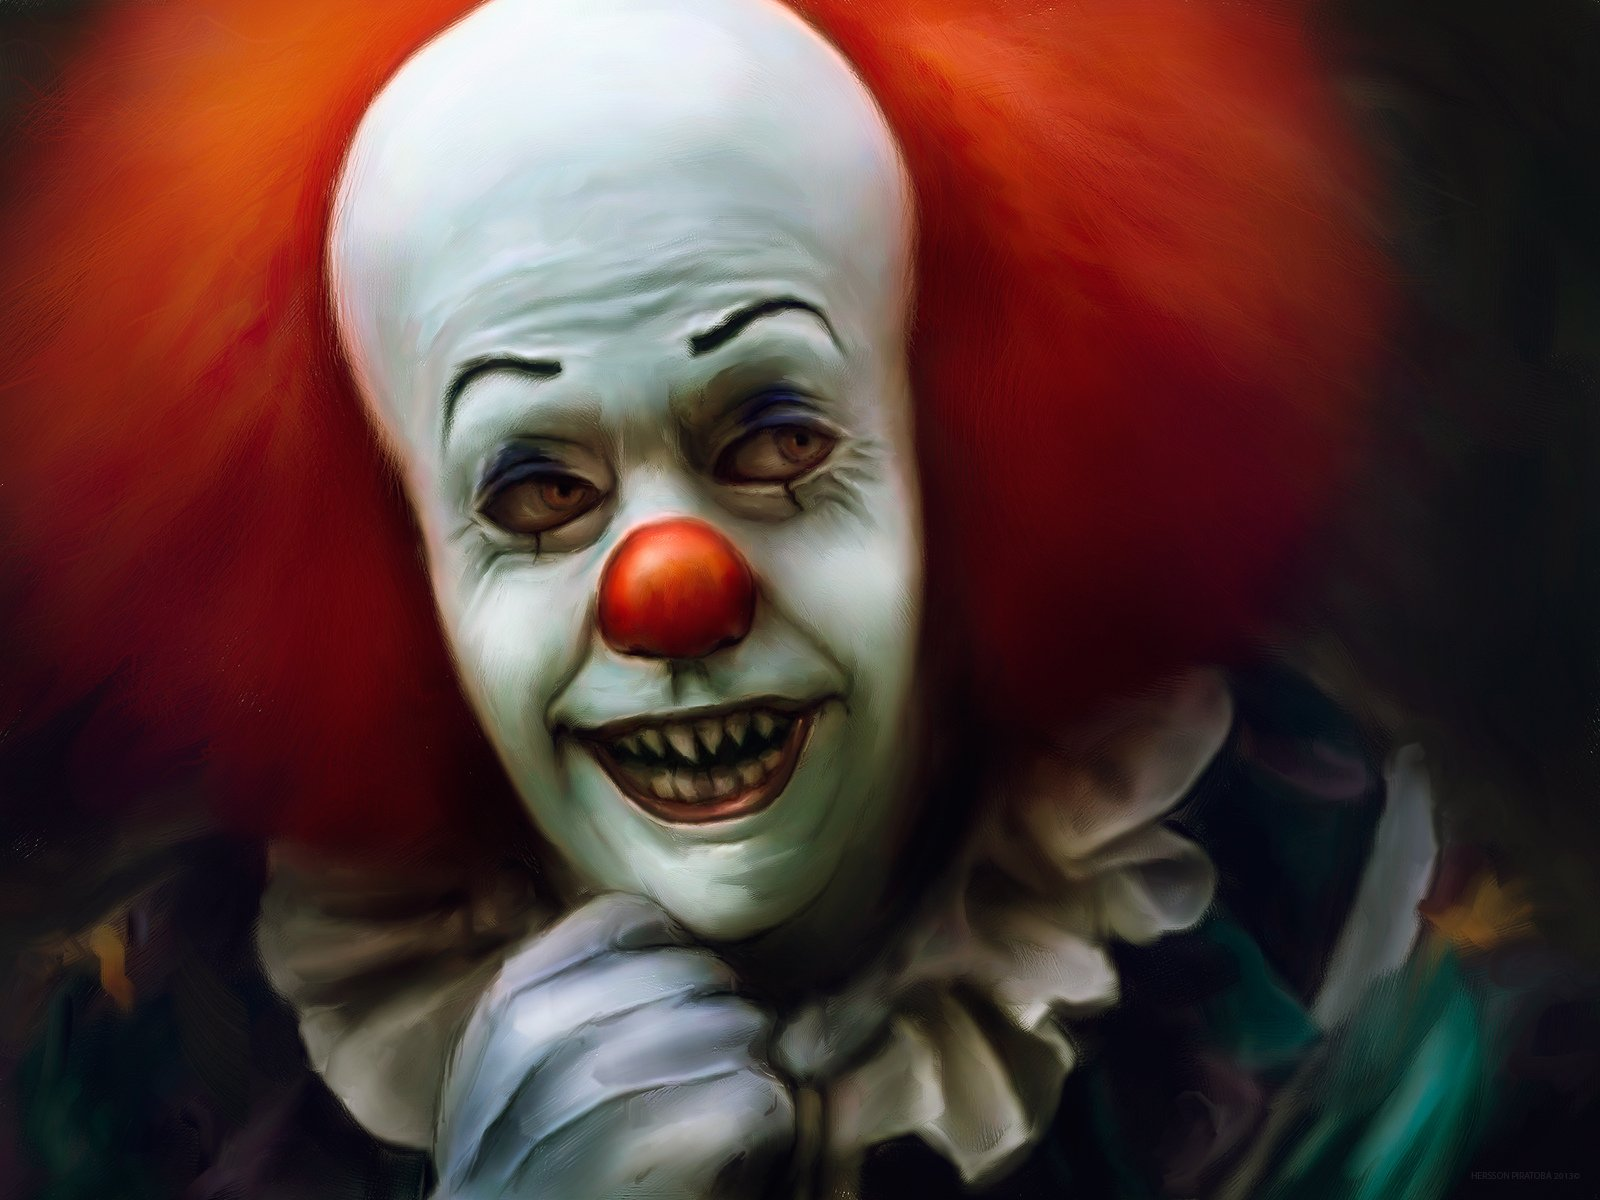 Pennywise the Clown Wallpaper - WallpaperSafari